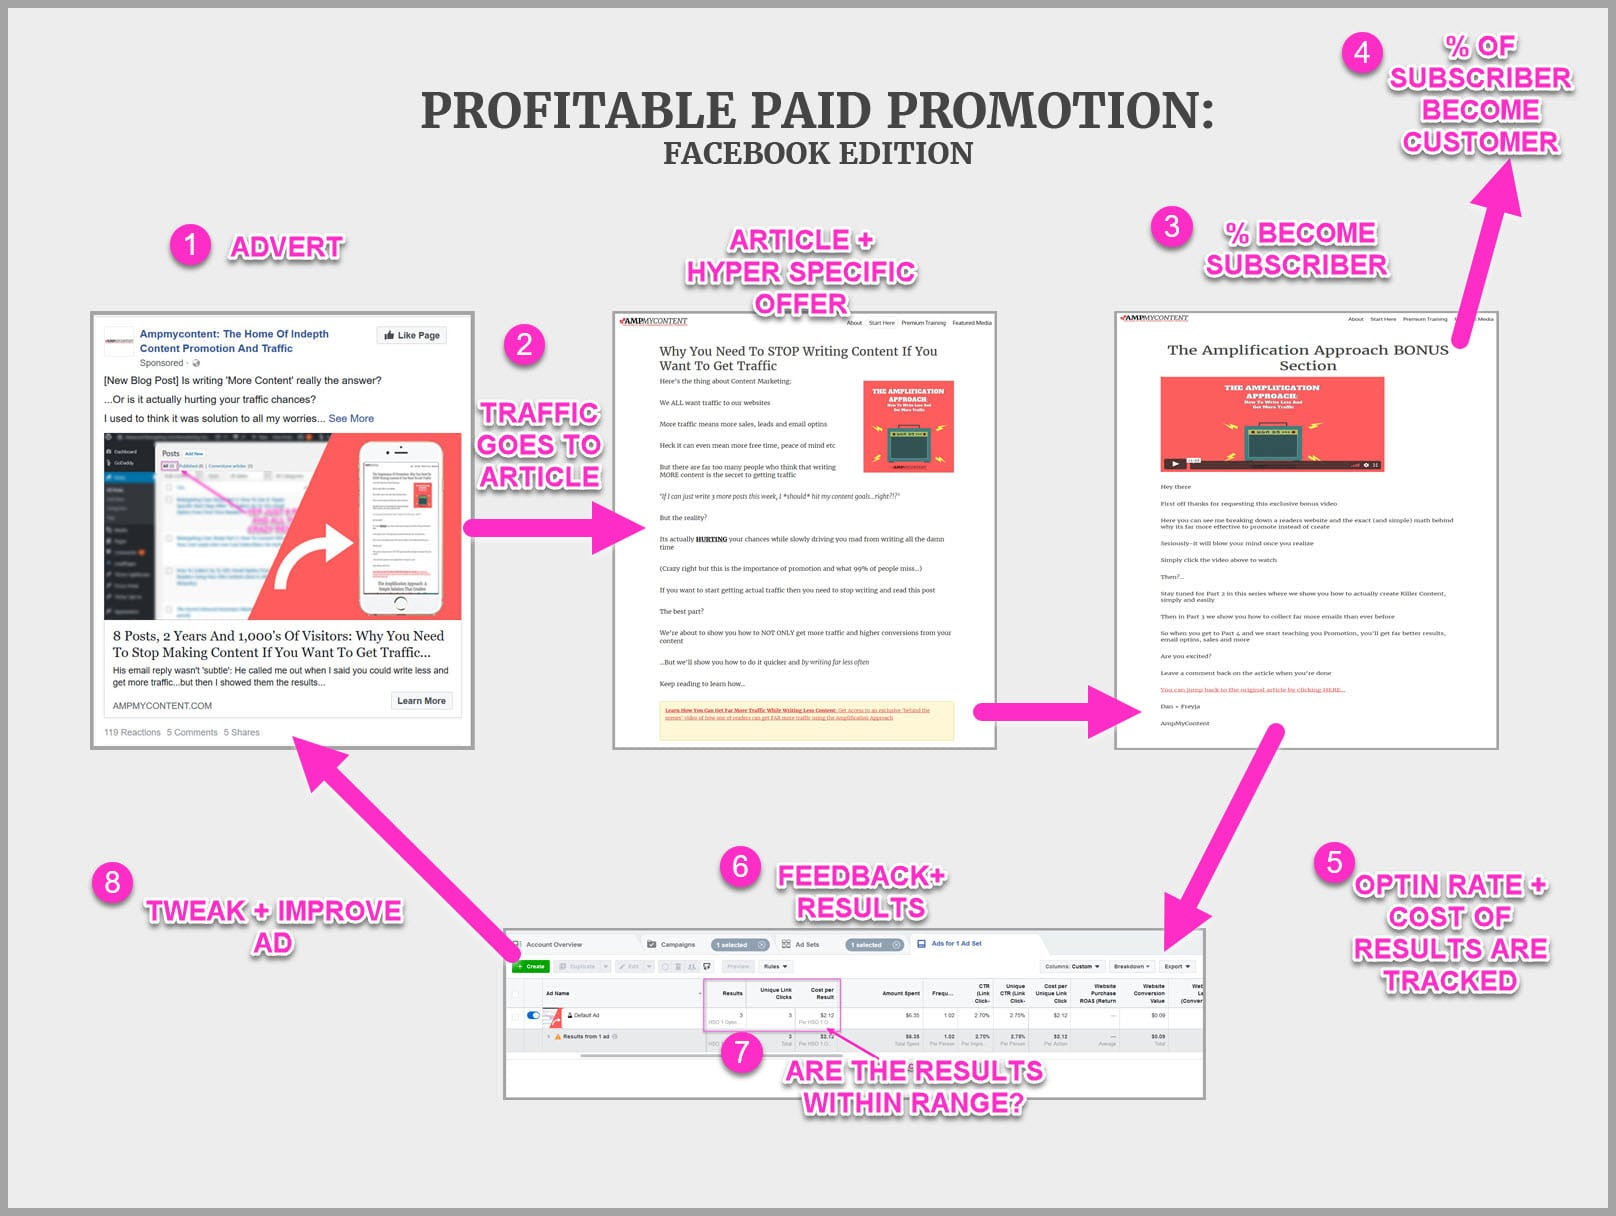 The 4 stage process to profitable promoted content, on Facebook